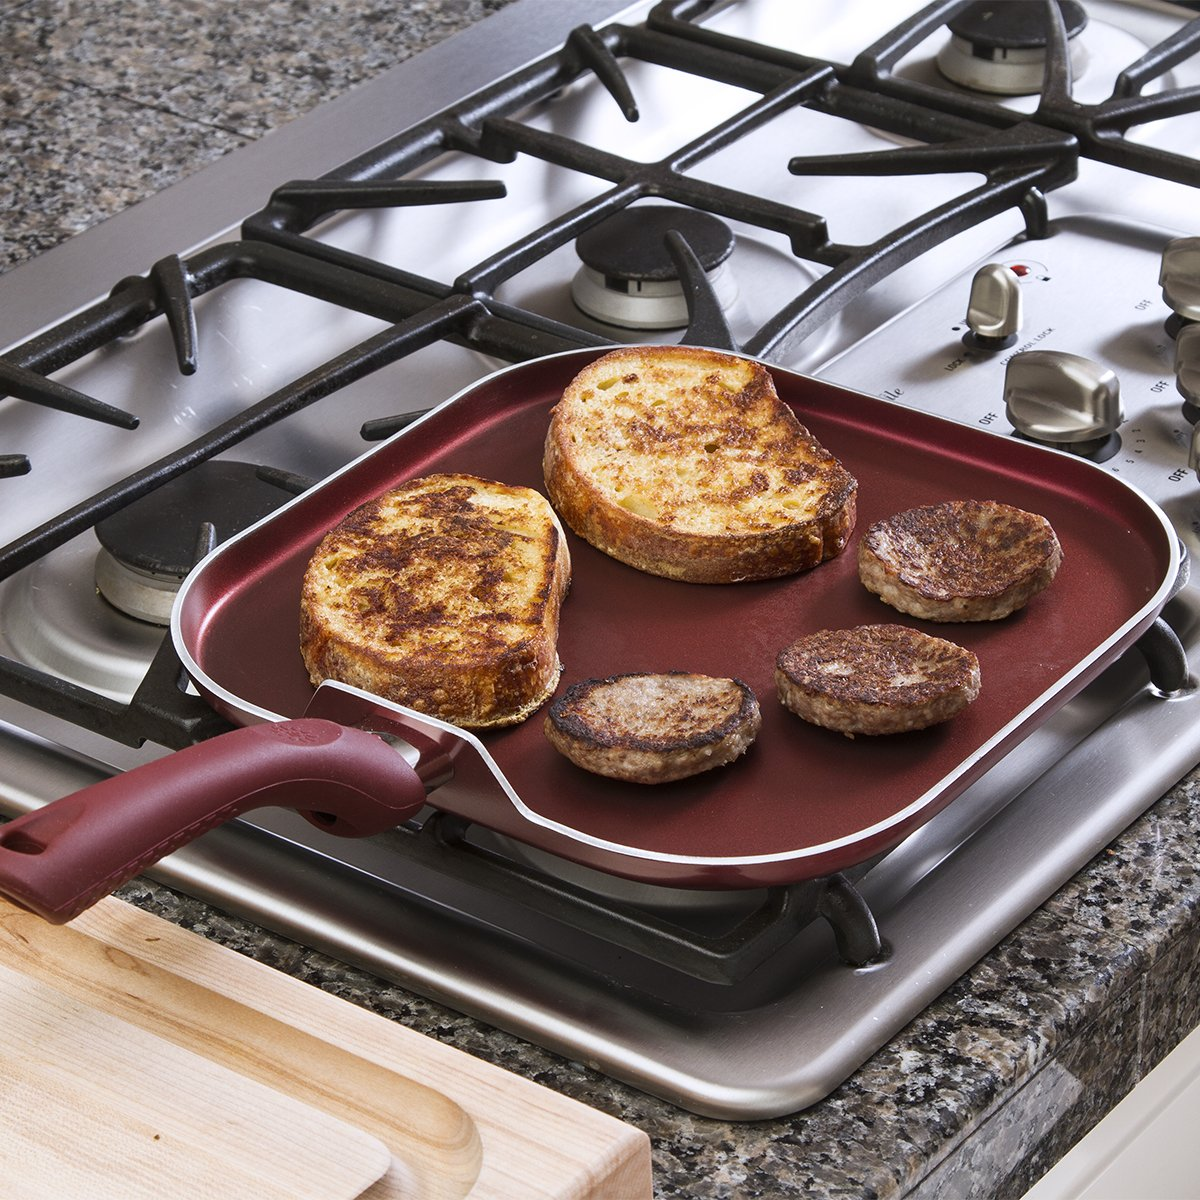 Ecolution Evolve Griddle Nonstick 11 Inch, Crimson Red